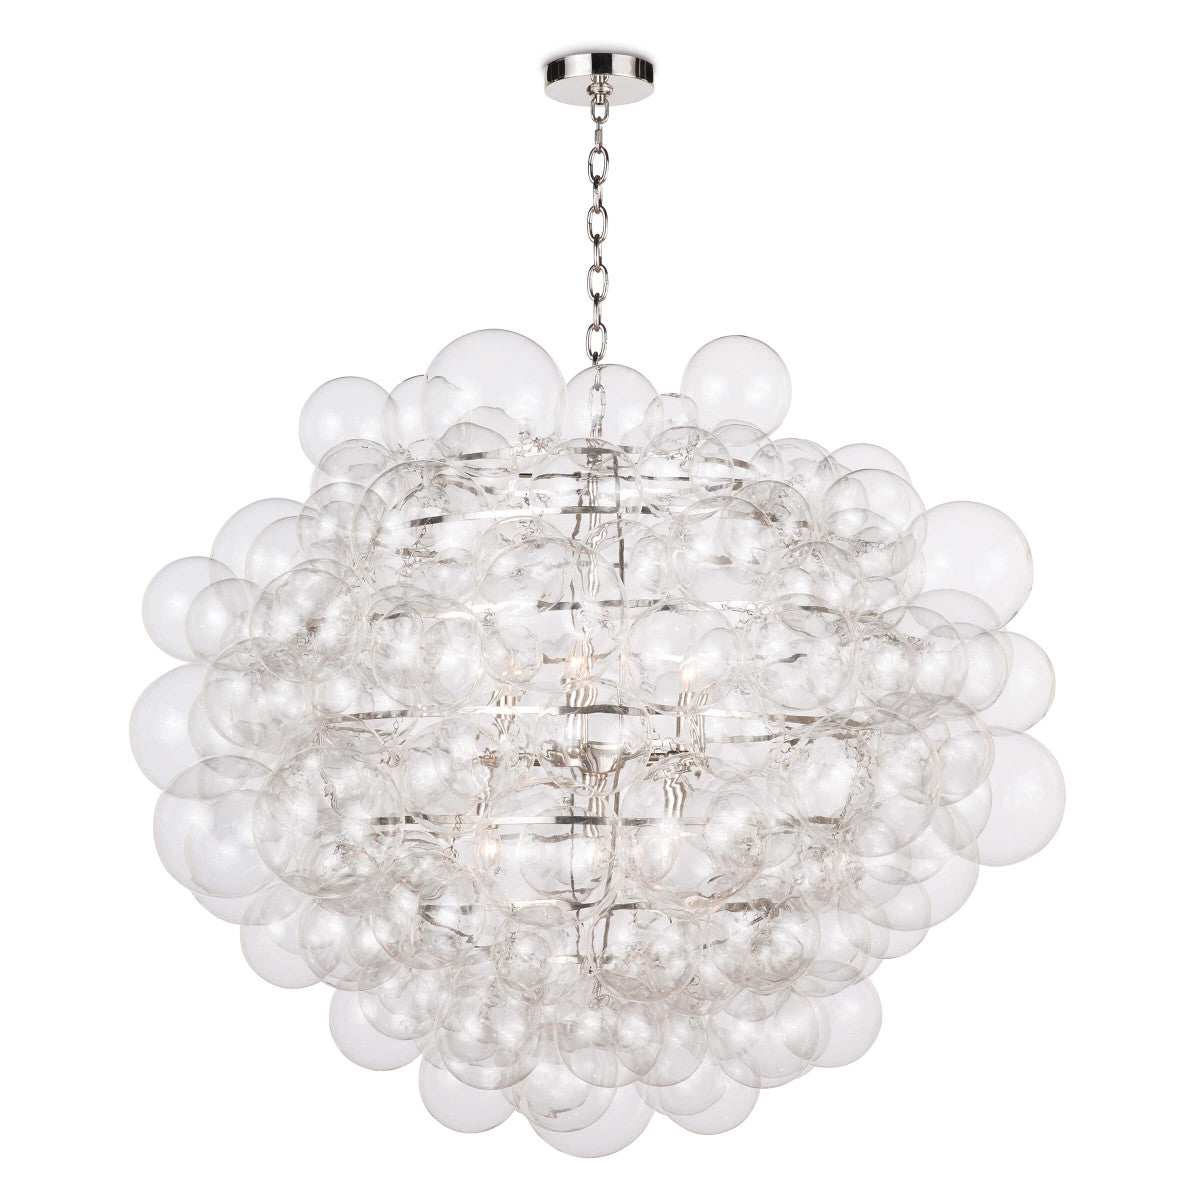 Nimbus Glass Chandelier 16-1202